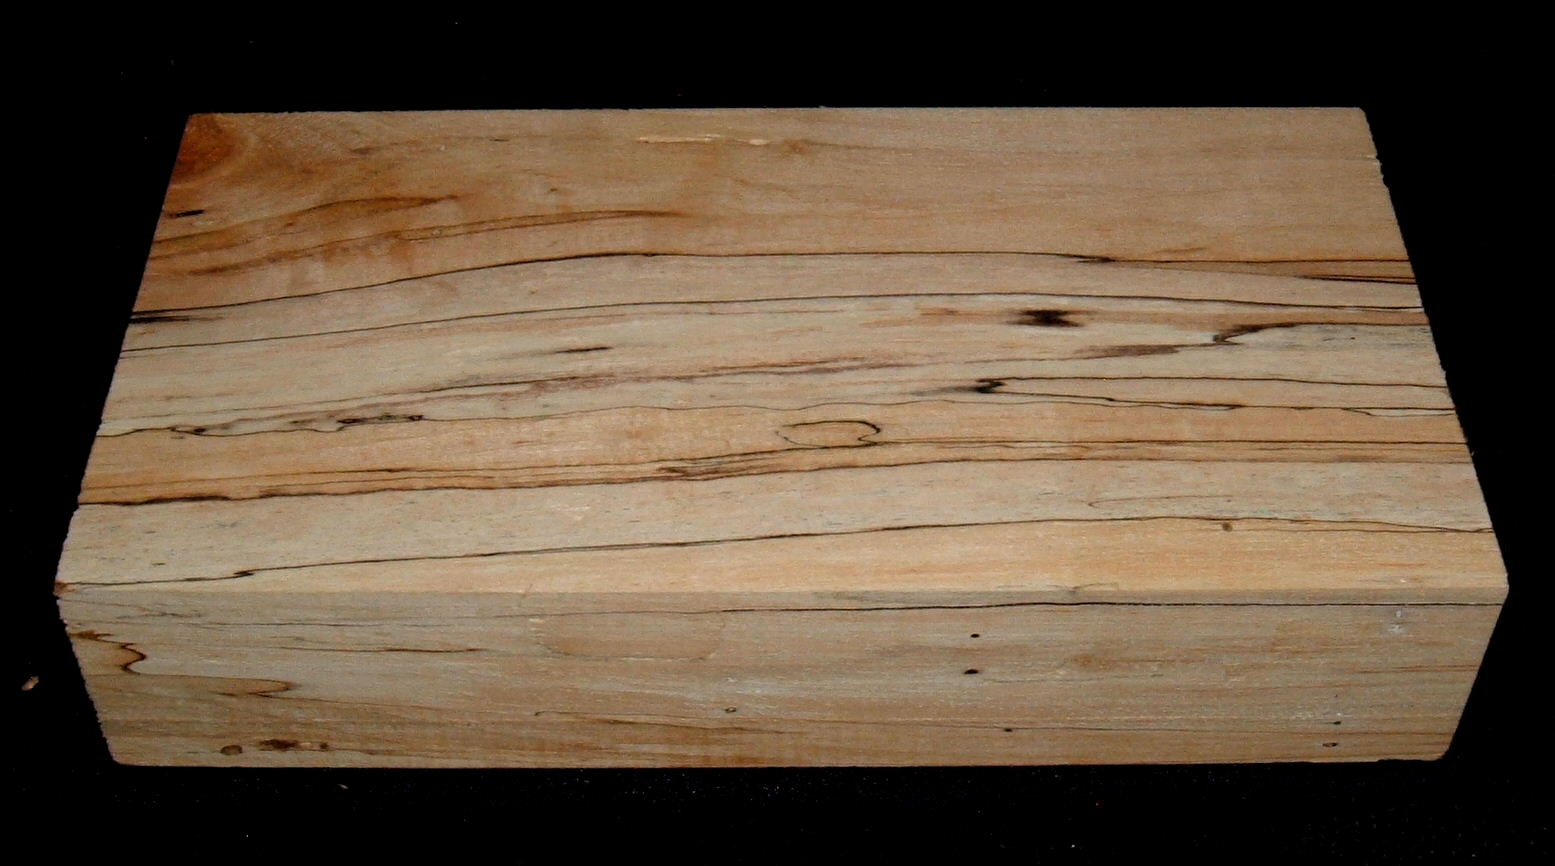 SPMS-3040n, 2-1/8x5-3/8x10+, Spalted Soft Maple